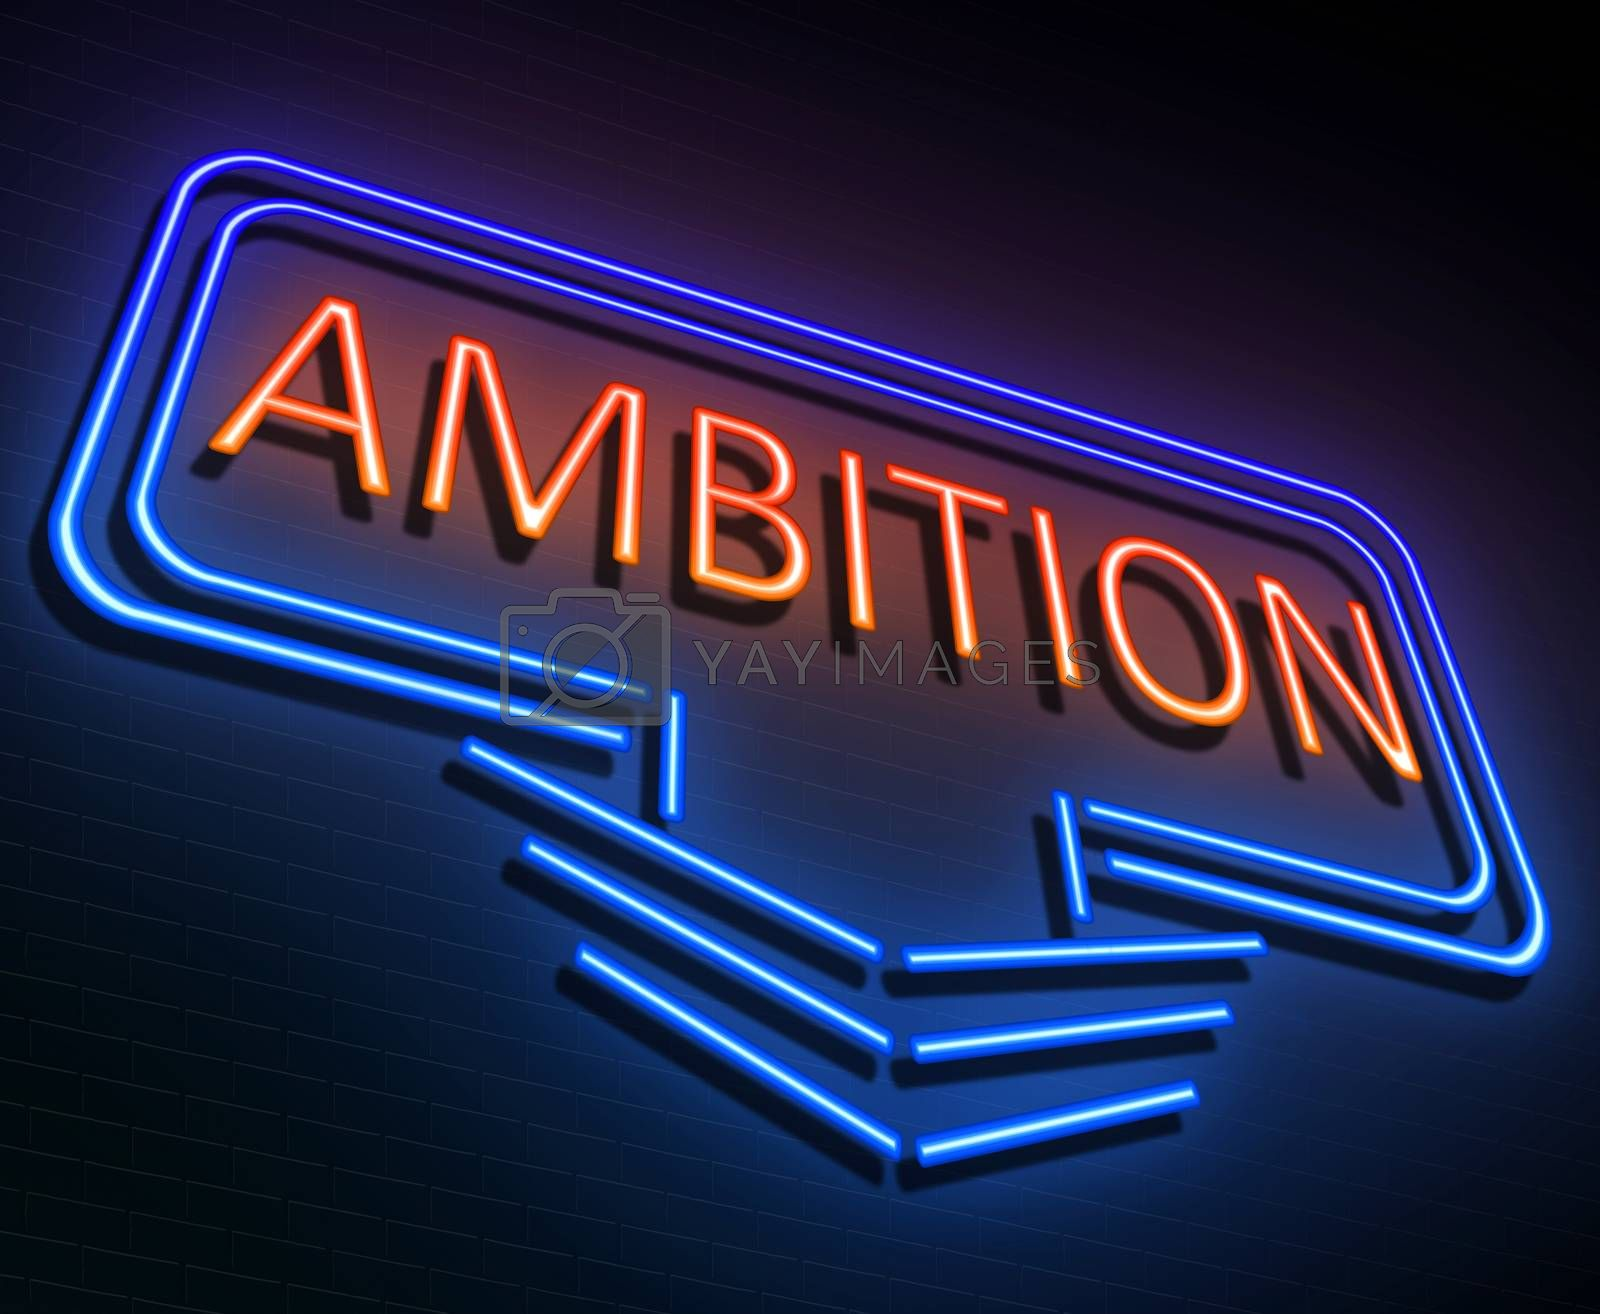 Illustration depicting an illuminated neon sign with an ambition concept.